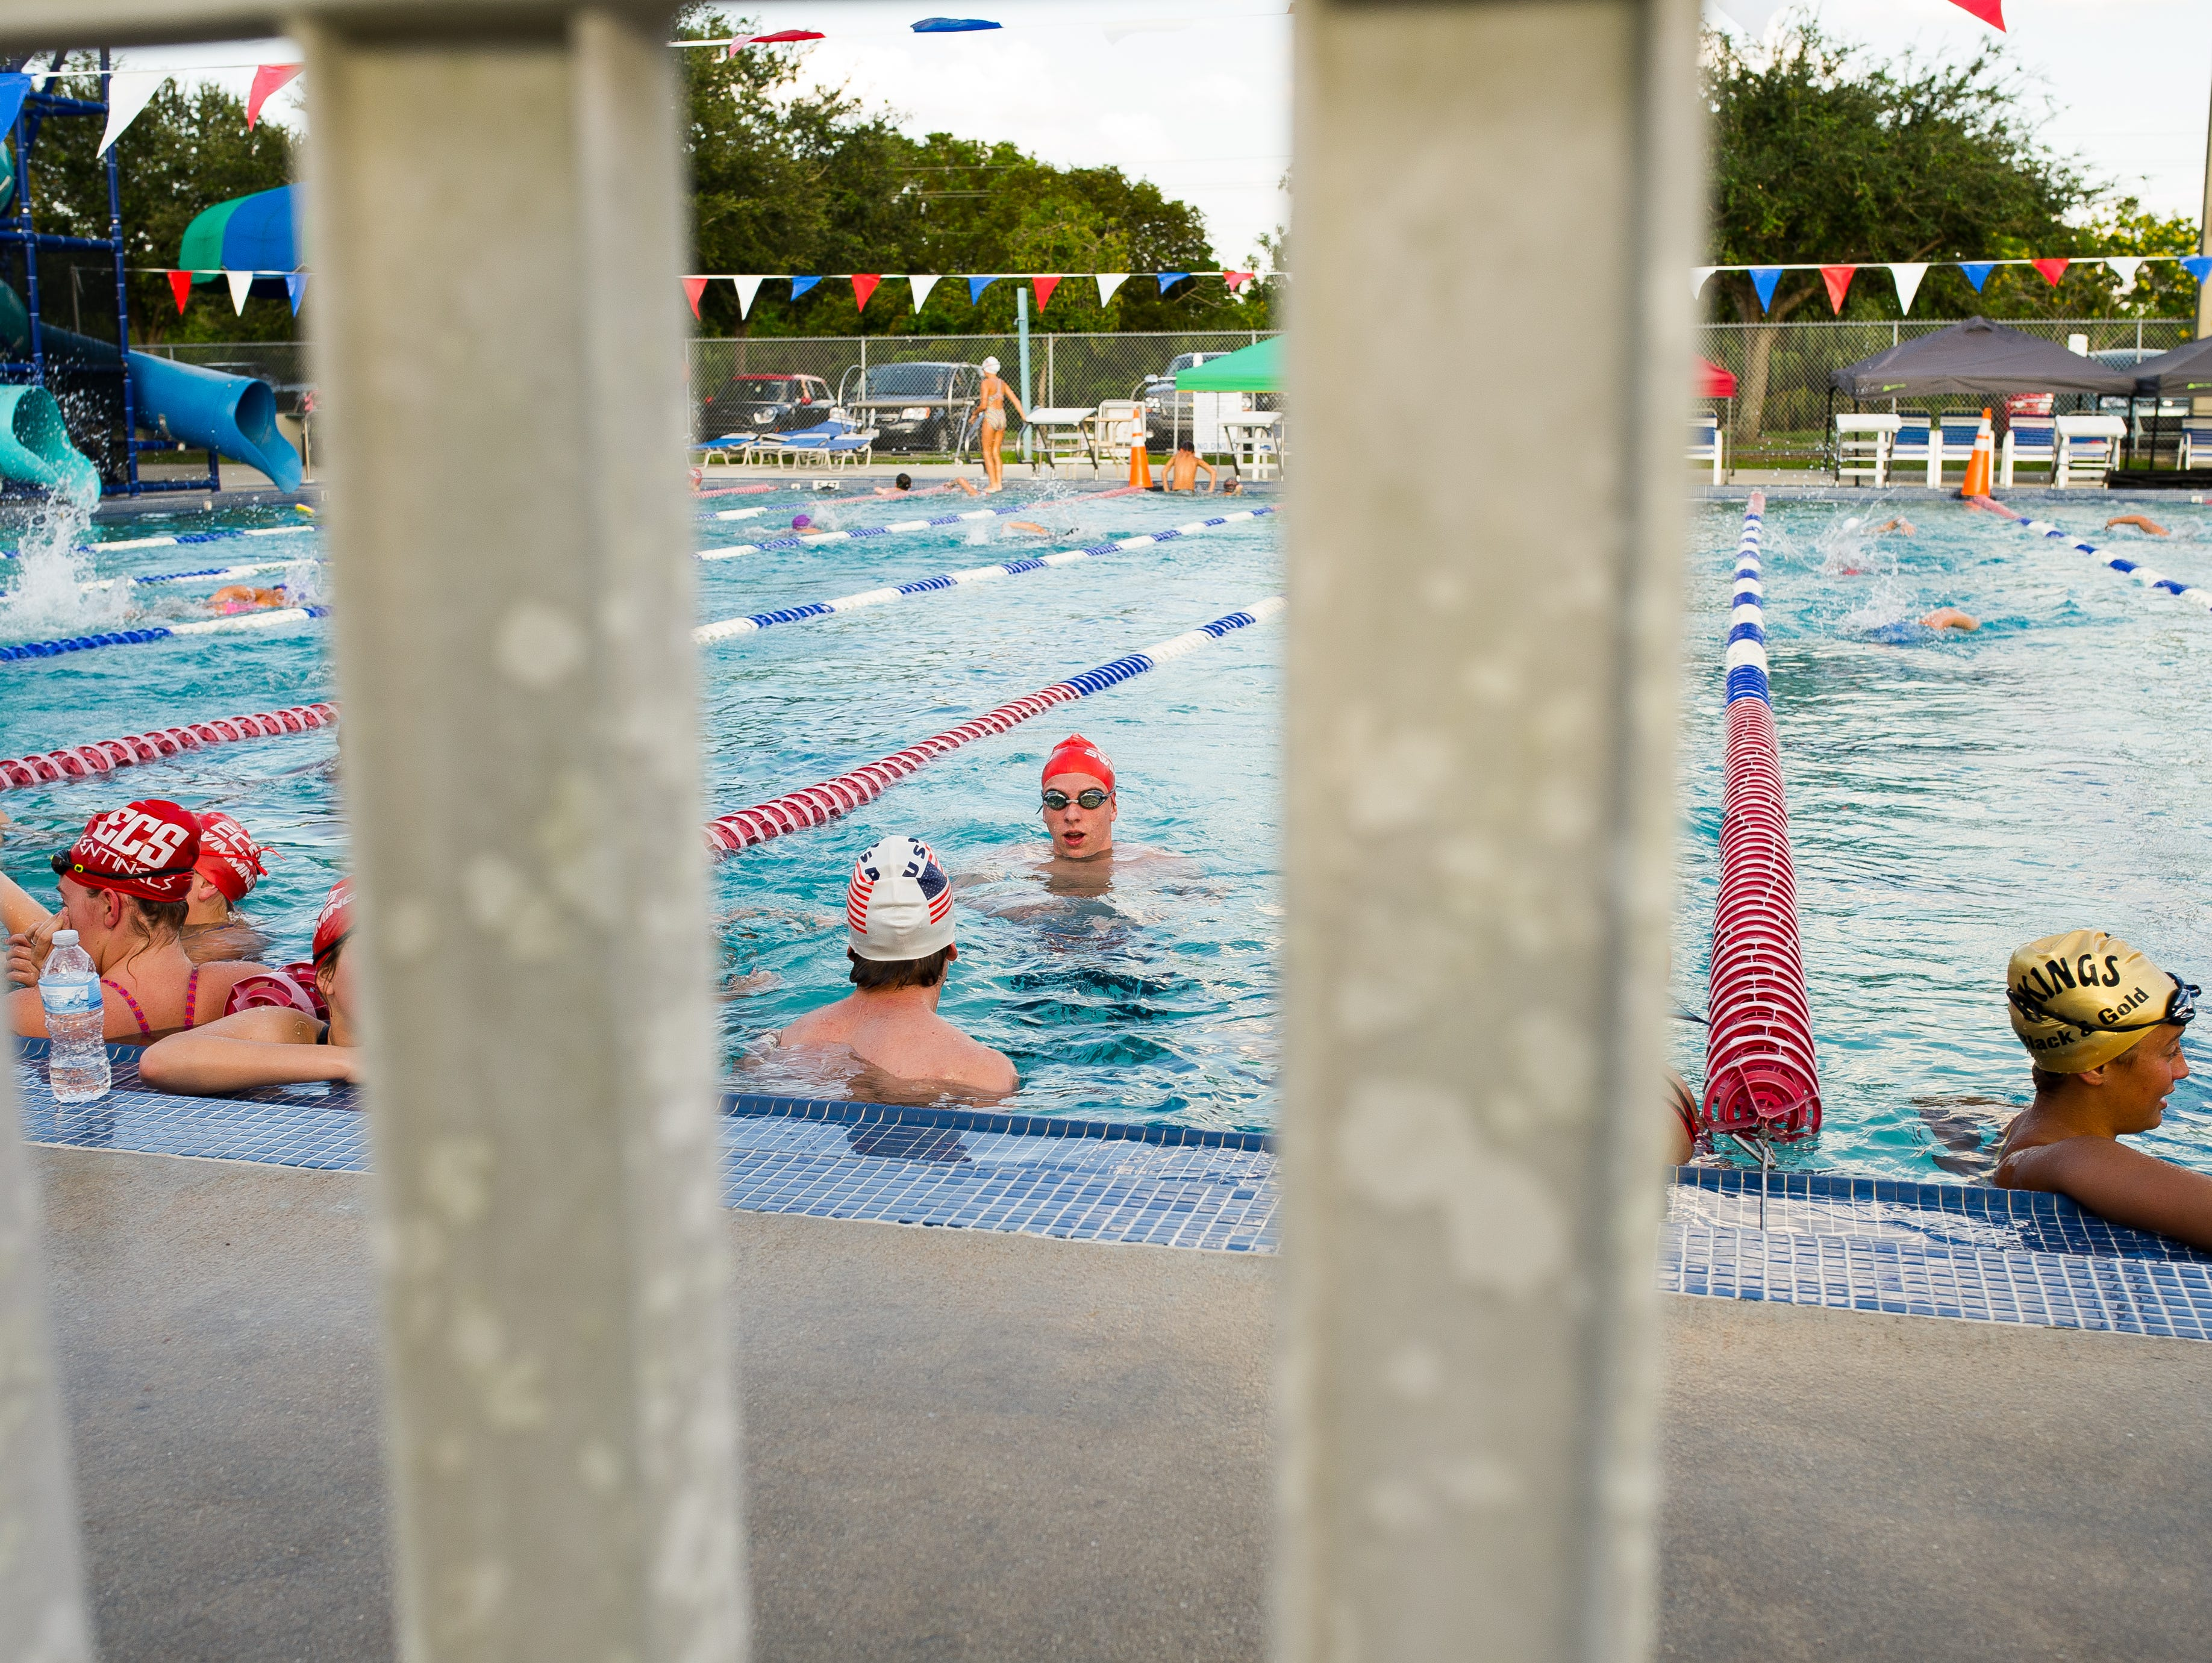 Students swim on Thursday, October 15, 2015 during Evangelical Christian School's swim practice held at the Fort Myers Aquatic Center in Fort Myers Fla. The team is undefeated heading into districts next week.